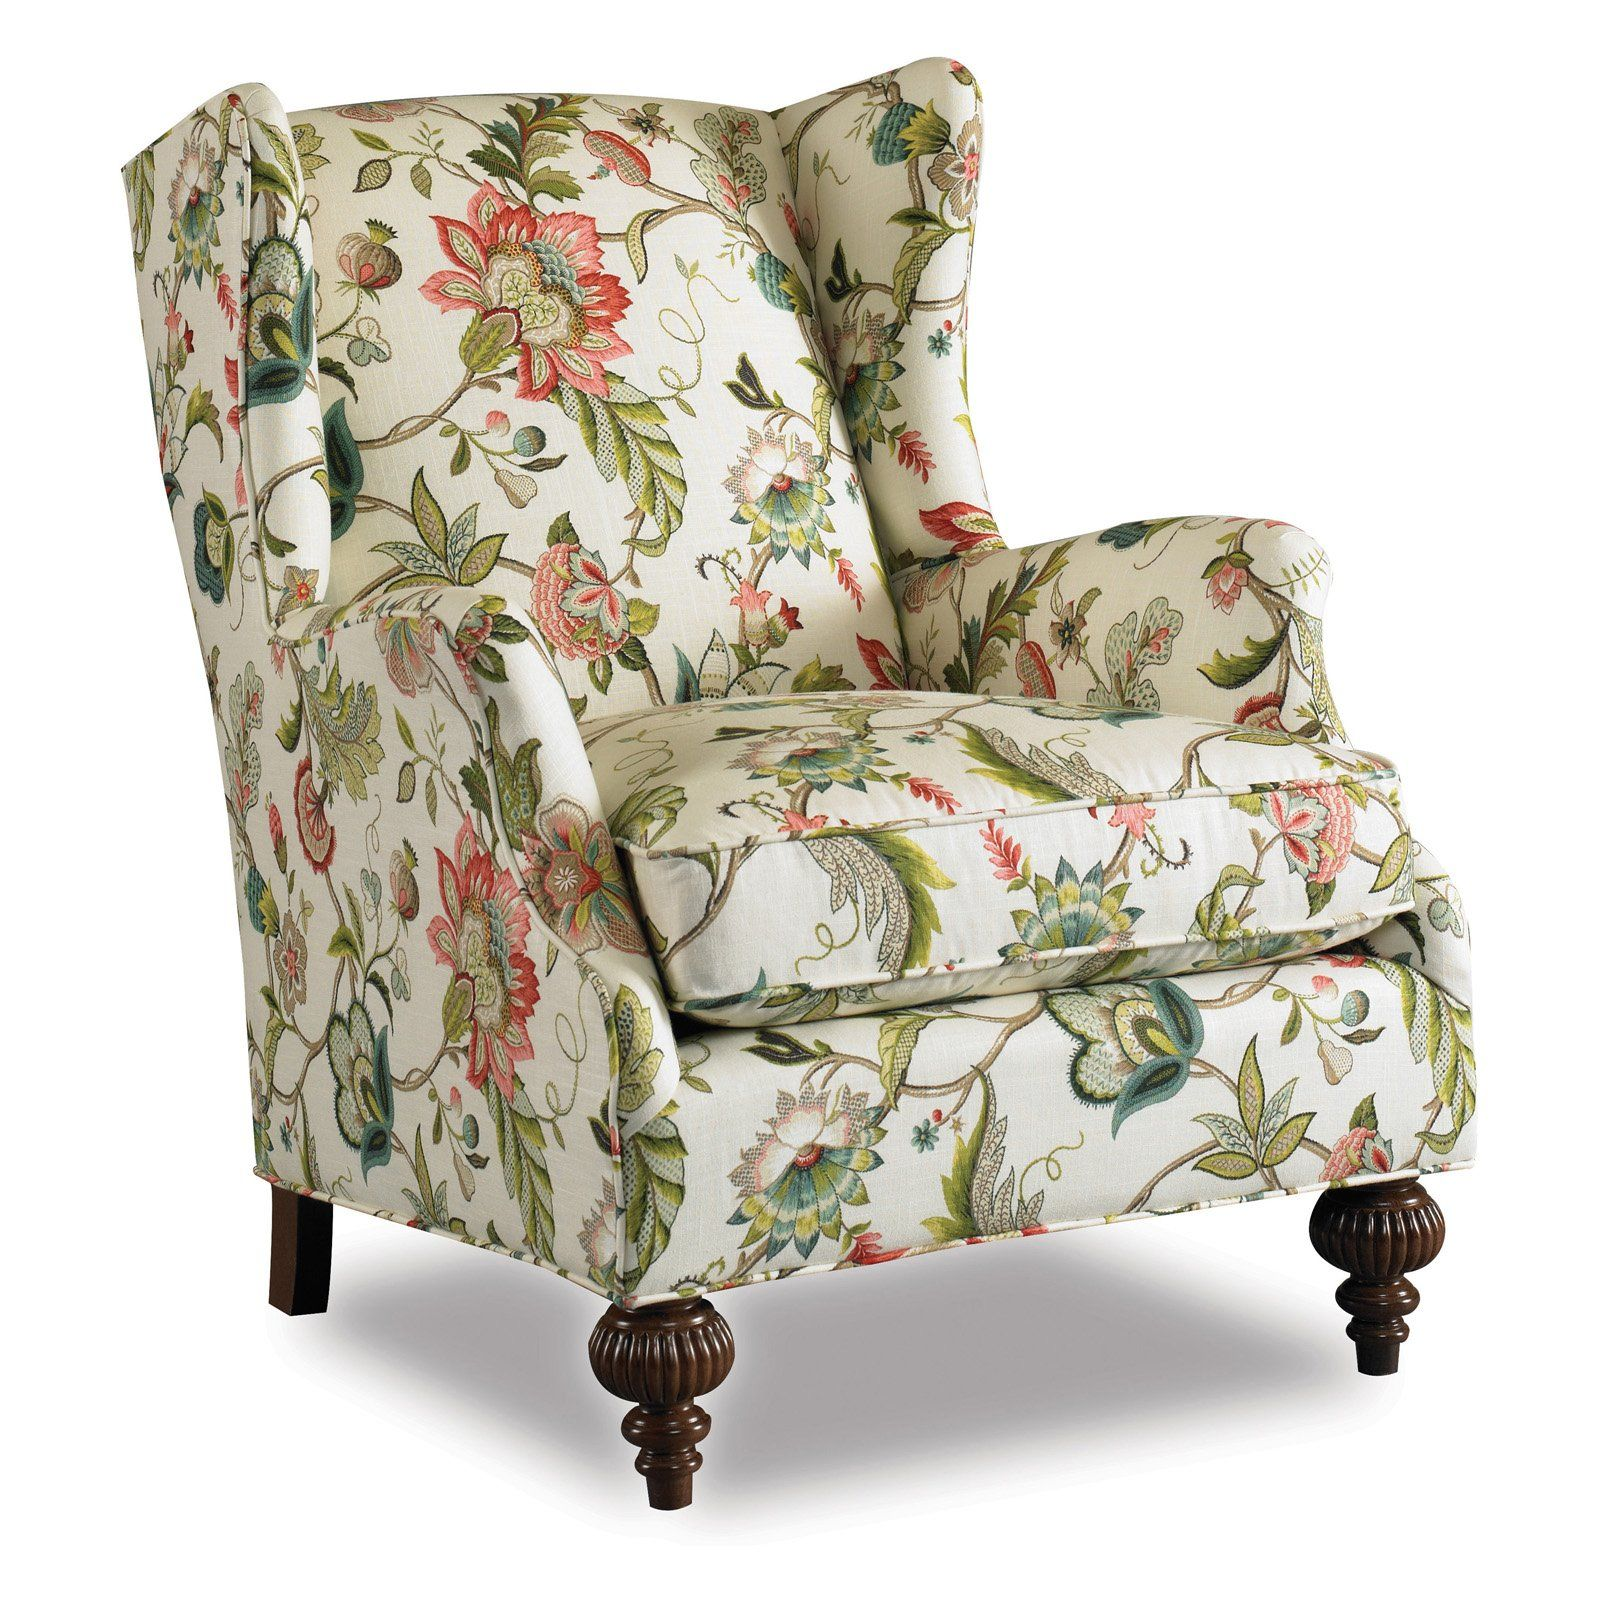 botanical print upholstery fabric chair